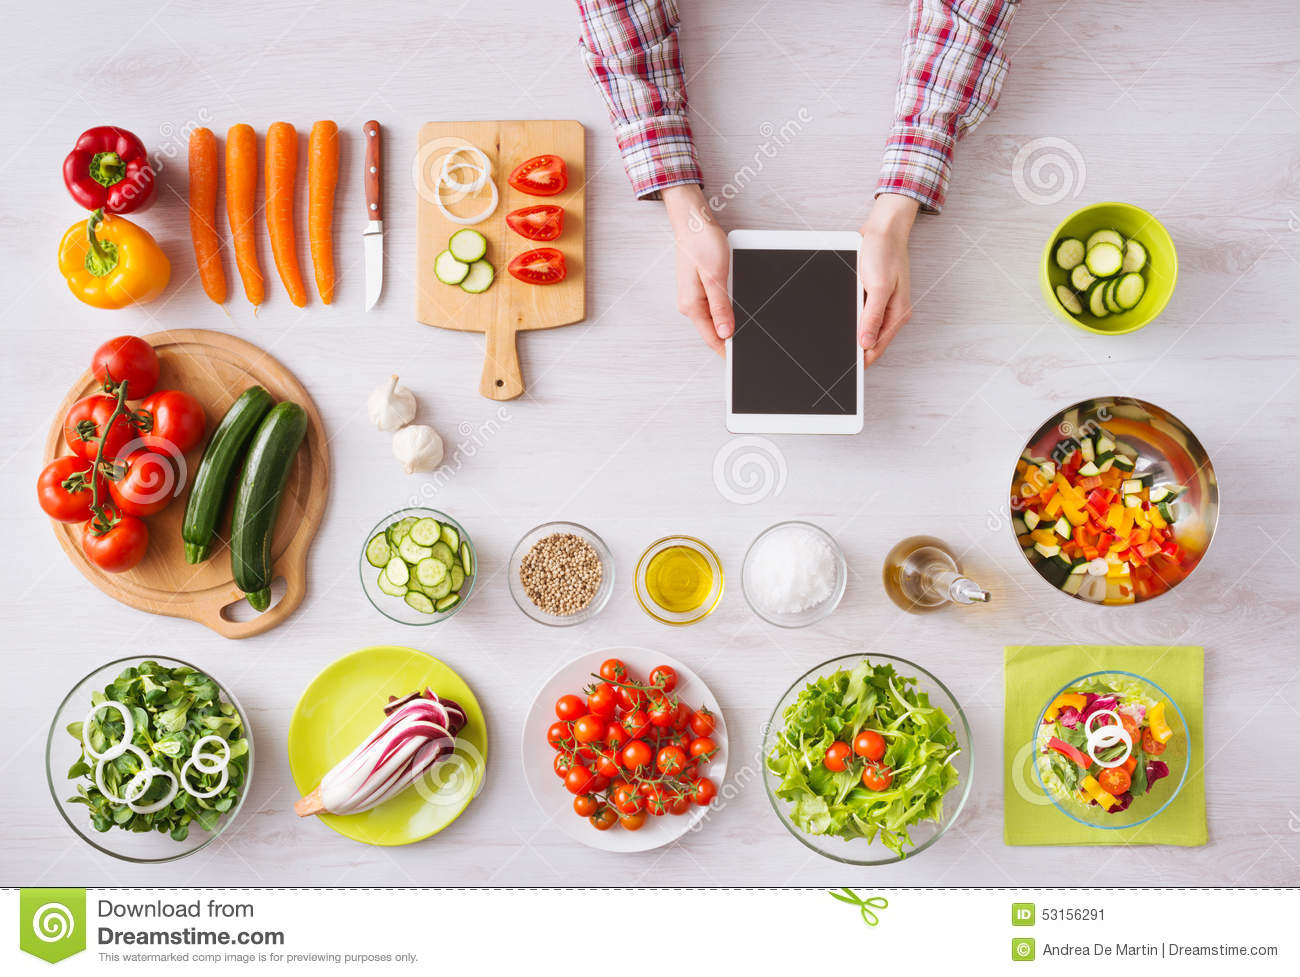 Online cooking app with kitchen worktop stock image image of online cooking app with kitchen worktop forumfinder Image collections